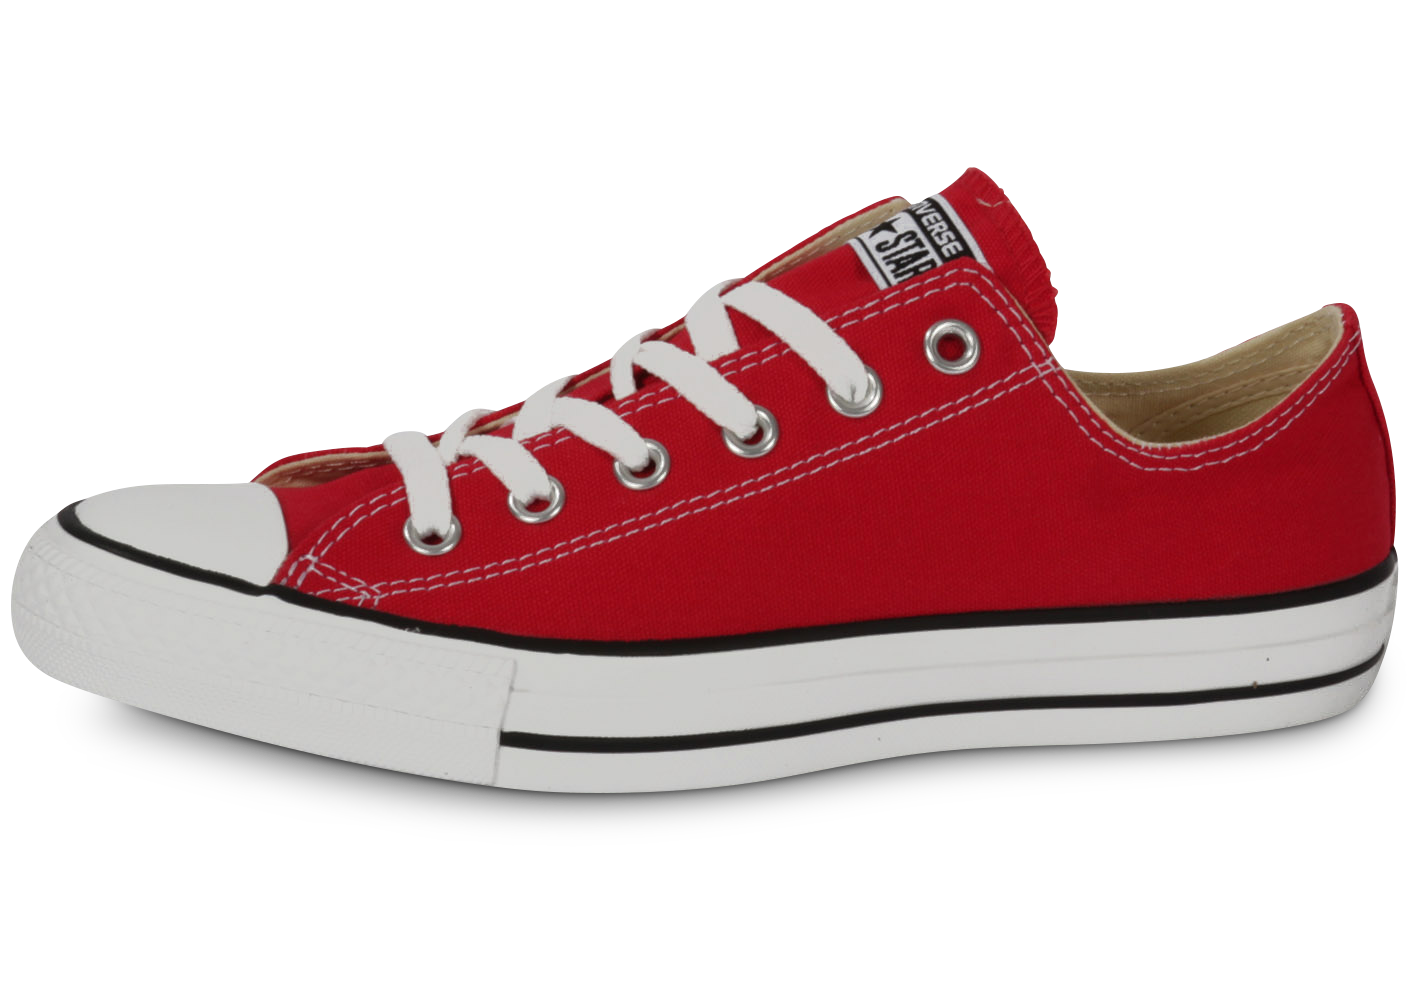 Converse chuck taylor all-star low rouge